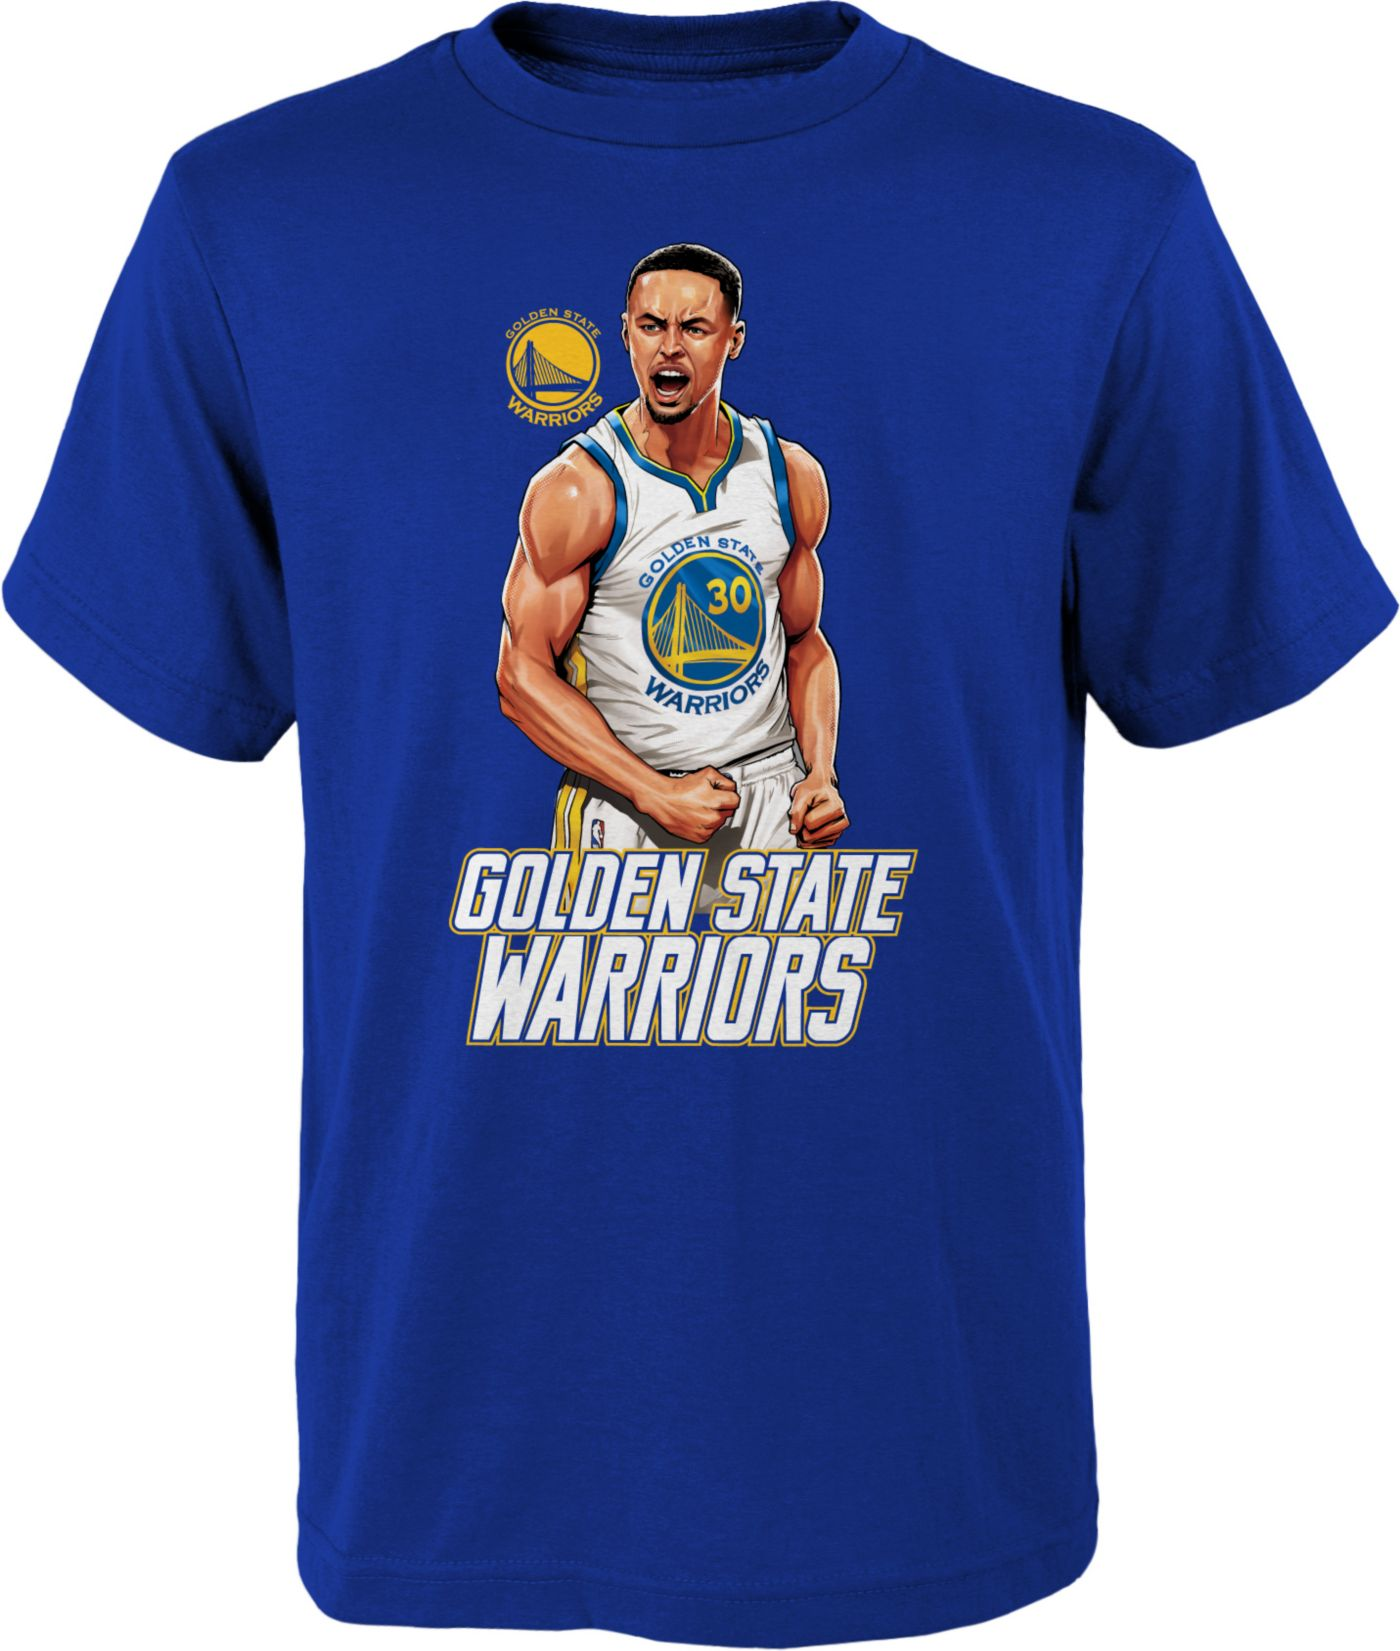 Nike Youth Golden State Warriors Stephen Curry T-Shirt